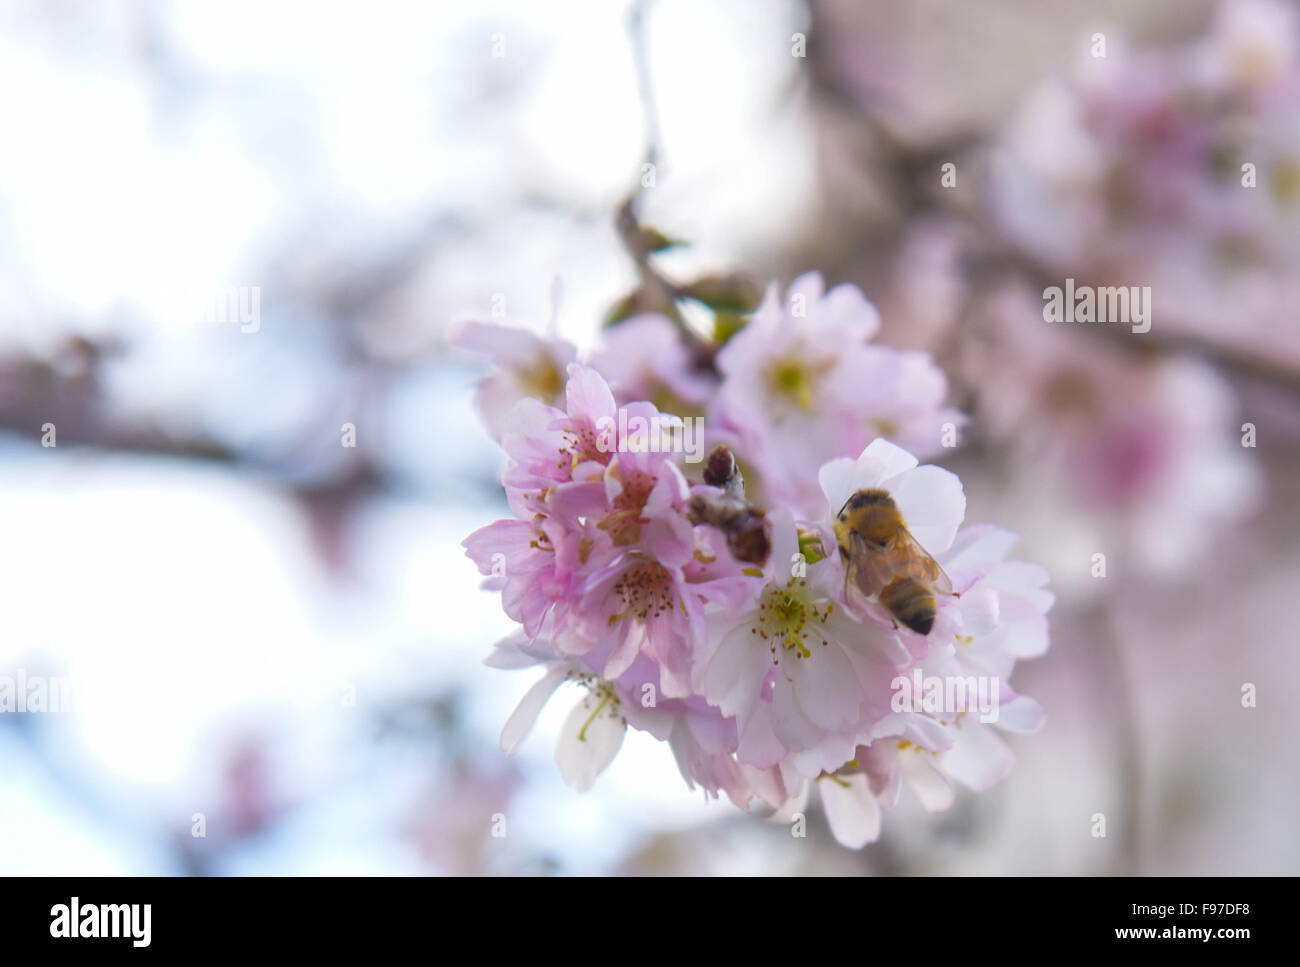 Washington, DC, USA. 14th Dec, 2015. Cherry blossoms are seen on the street in Washington, DC, capital of the United Stock Photo